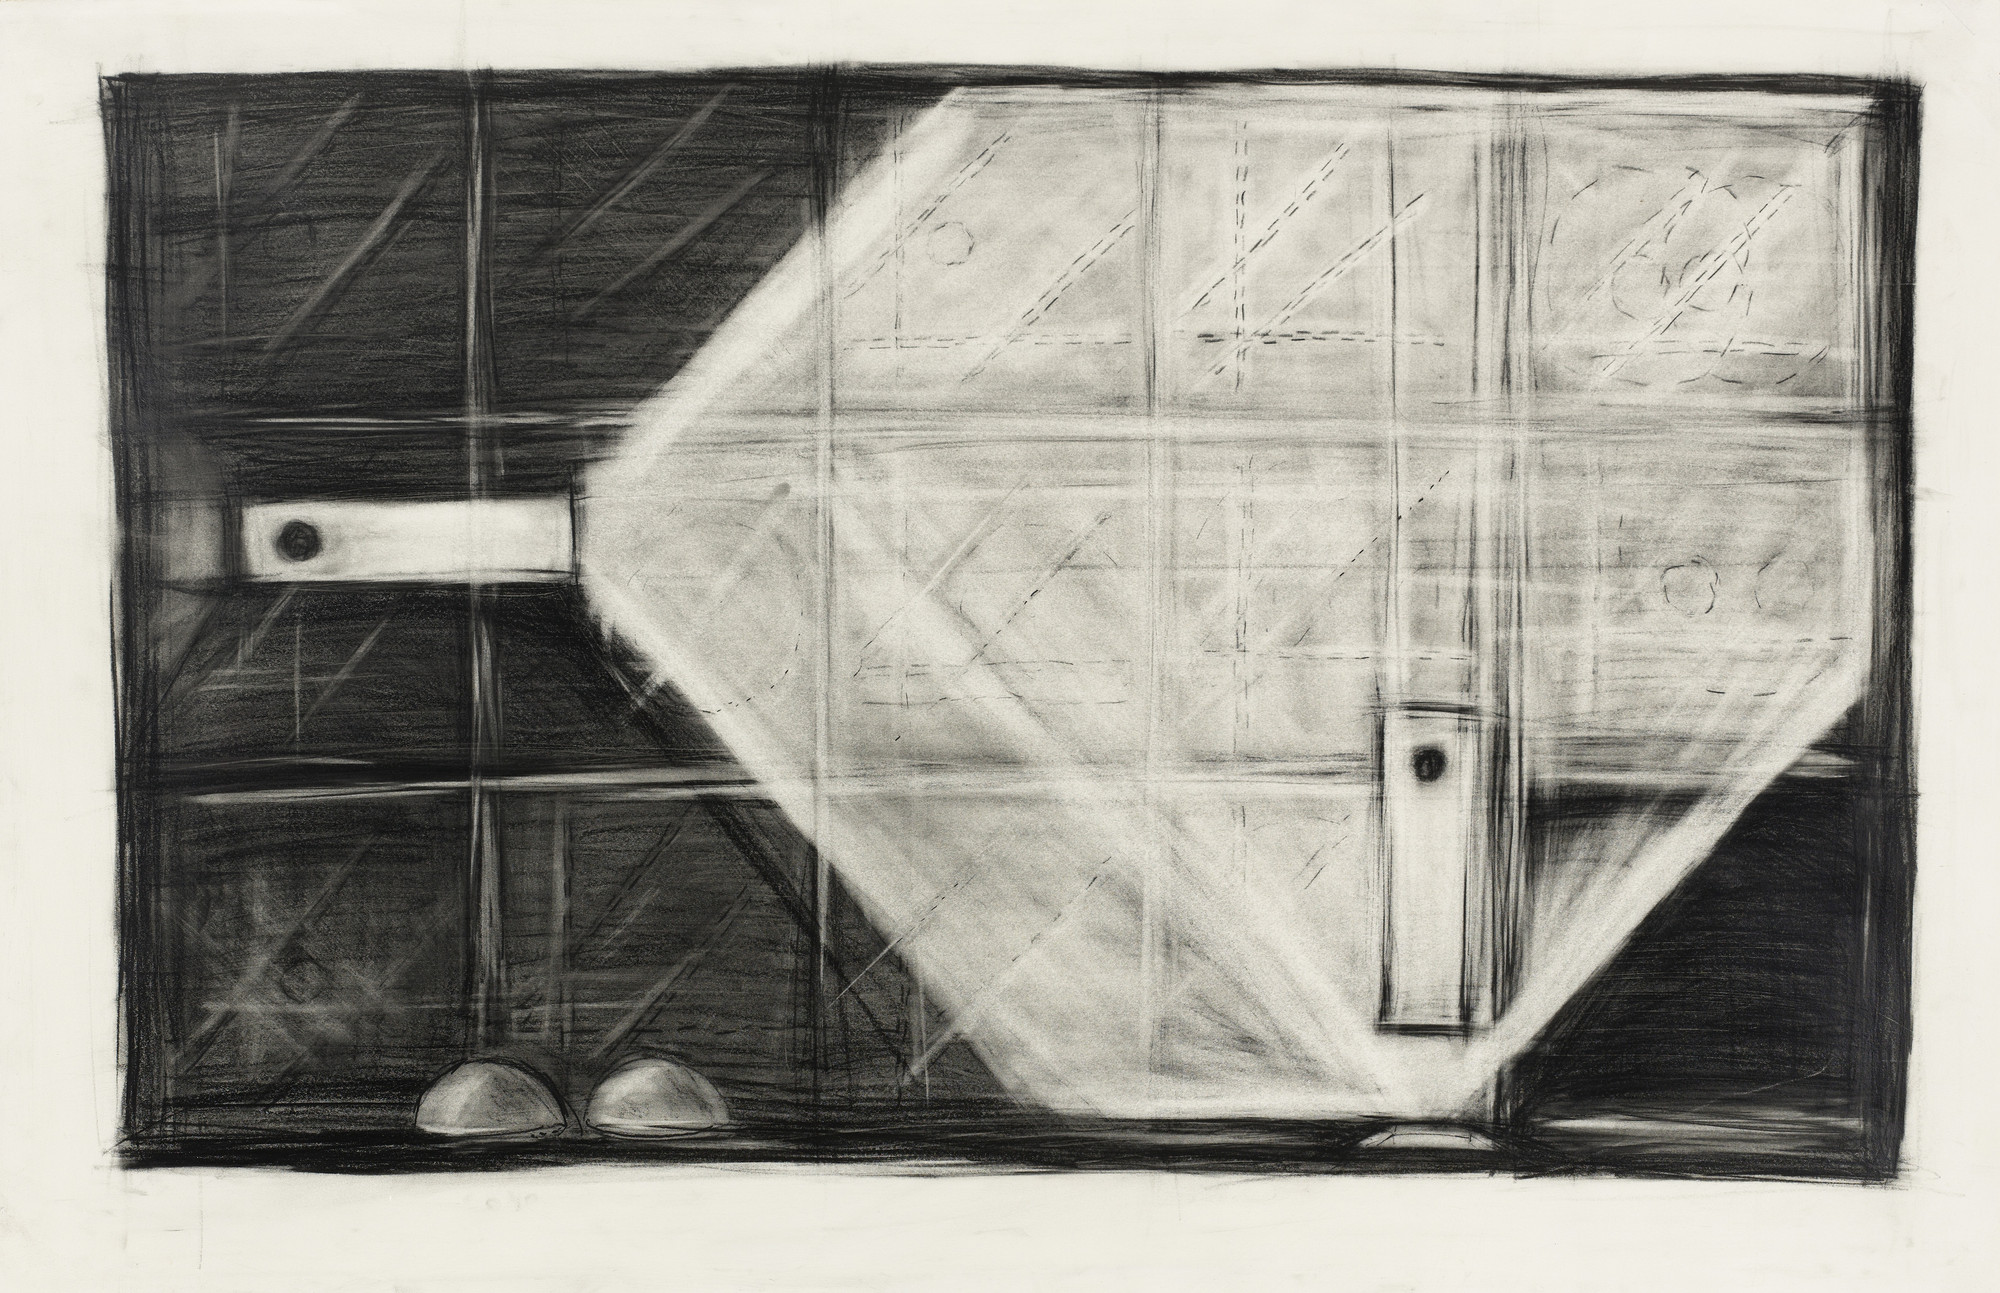 Robert Wilson. Large Drawing for Spaceship Scene. Design for the opera Einstein on the Beach. 1976